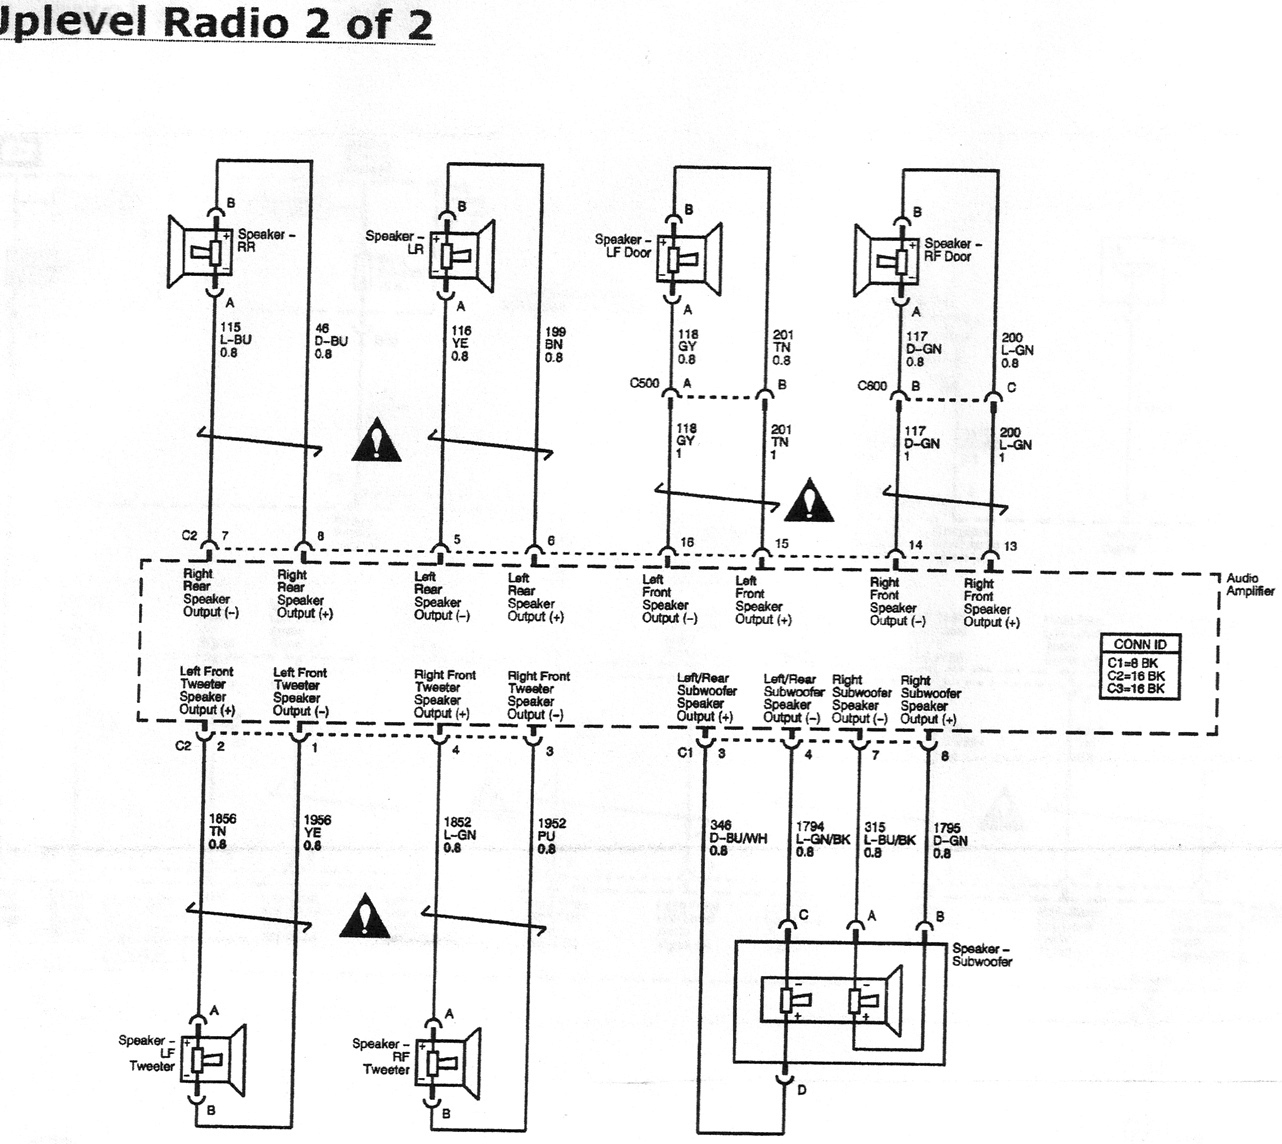 29802 monsoon amp speaker replacement monsoon_wiring_diagram_page_2 gm monsoon wiring diagram gm wiring diagrams instruction Monsoon Amplifier Specs at fashall.co